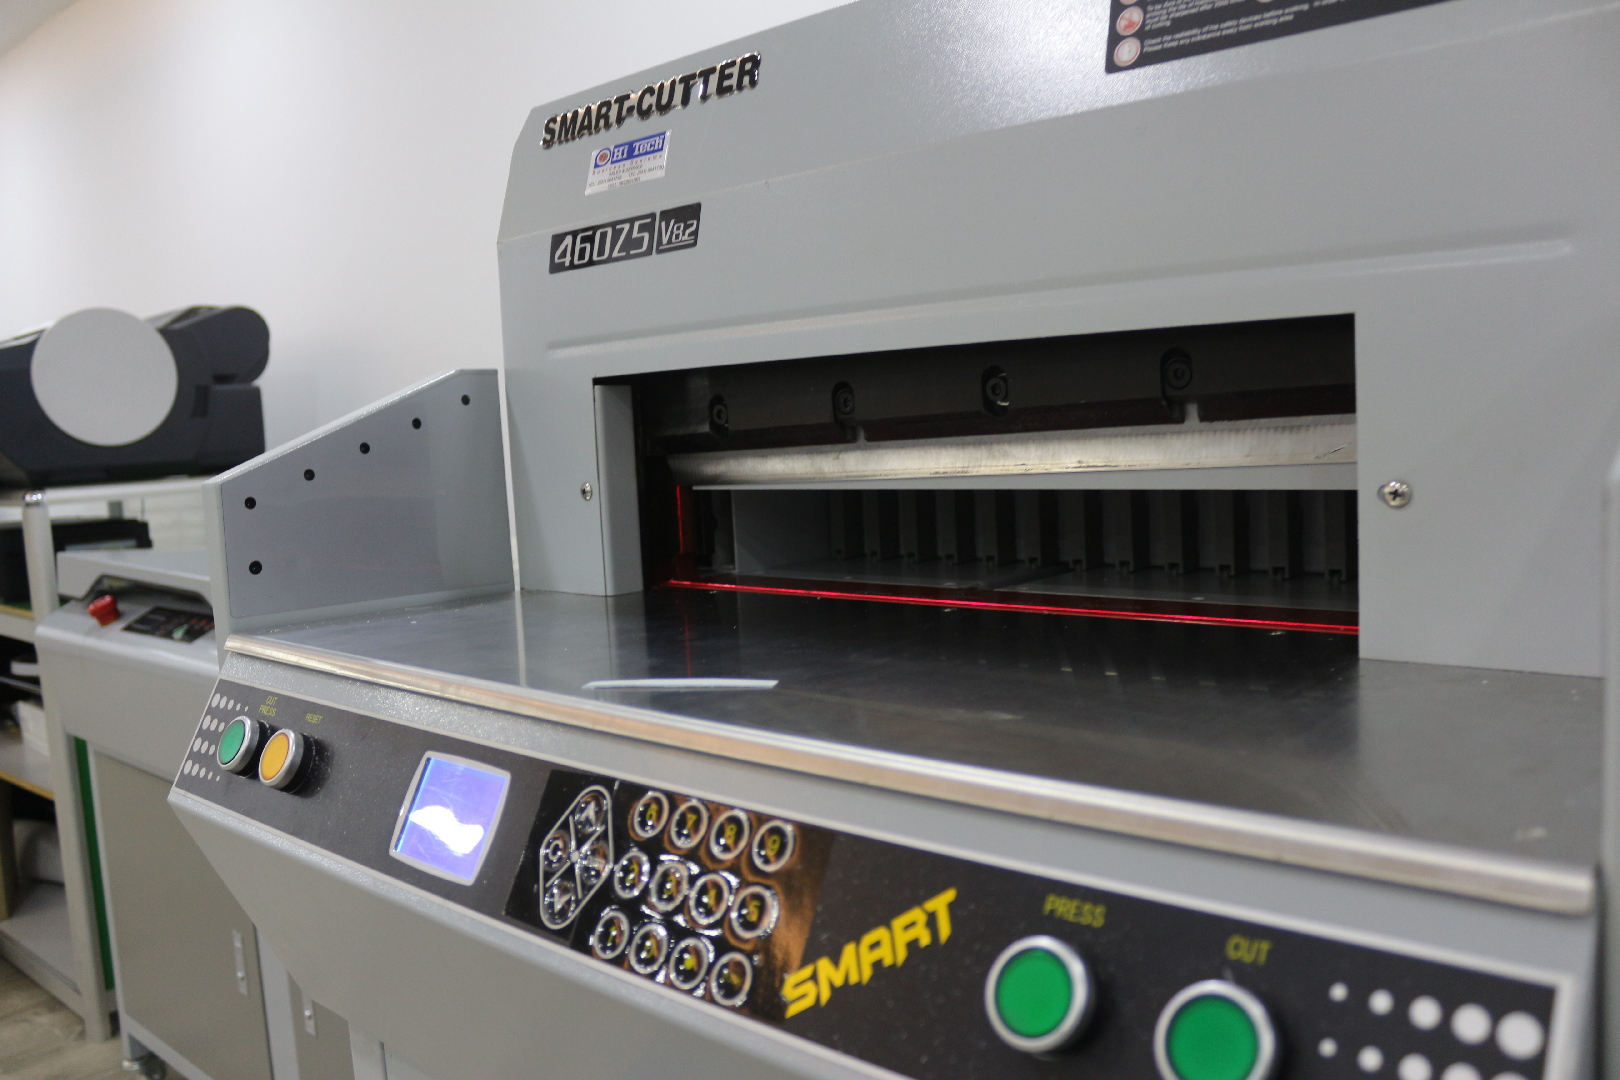 207dde782 ... print technology, and skilled staff with years of experience in the digital  print industry. Try us for cost-effective, short-run, on-demand printing  and ...